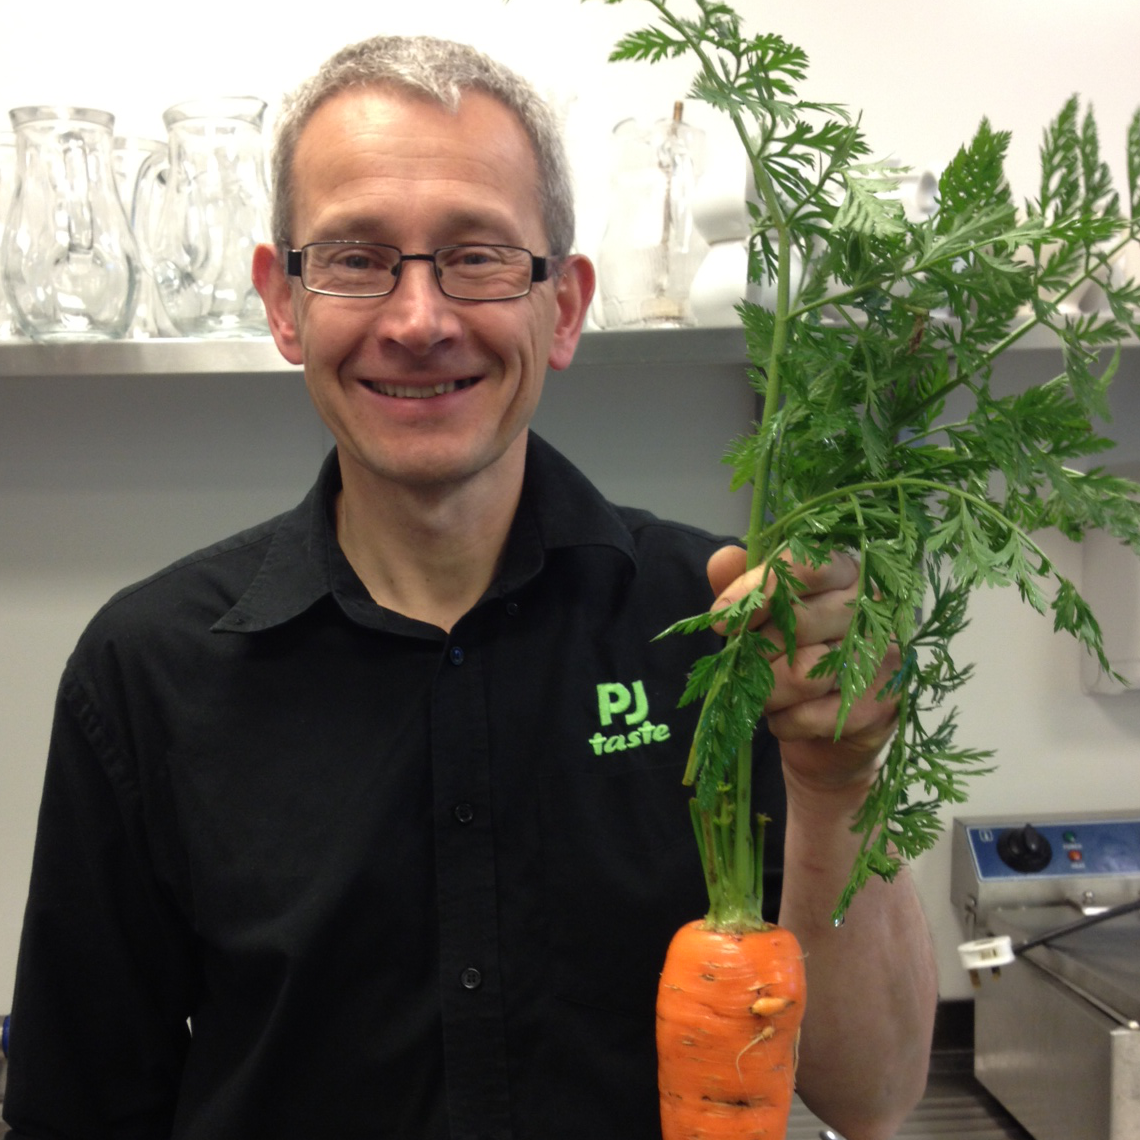 The biggest carrot that we have grown